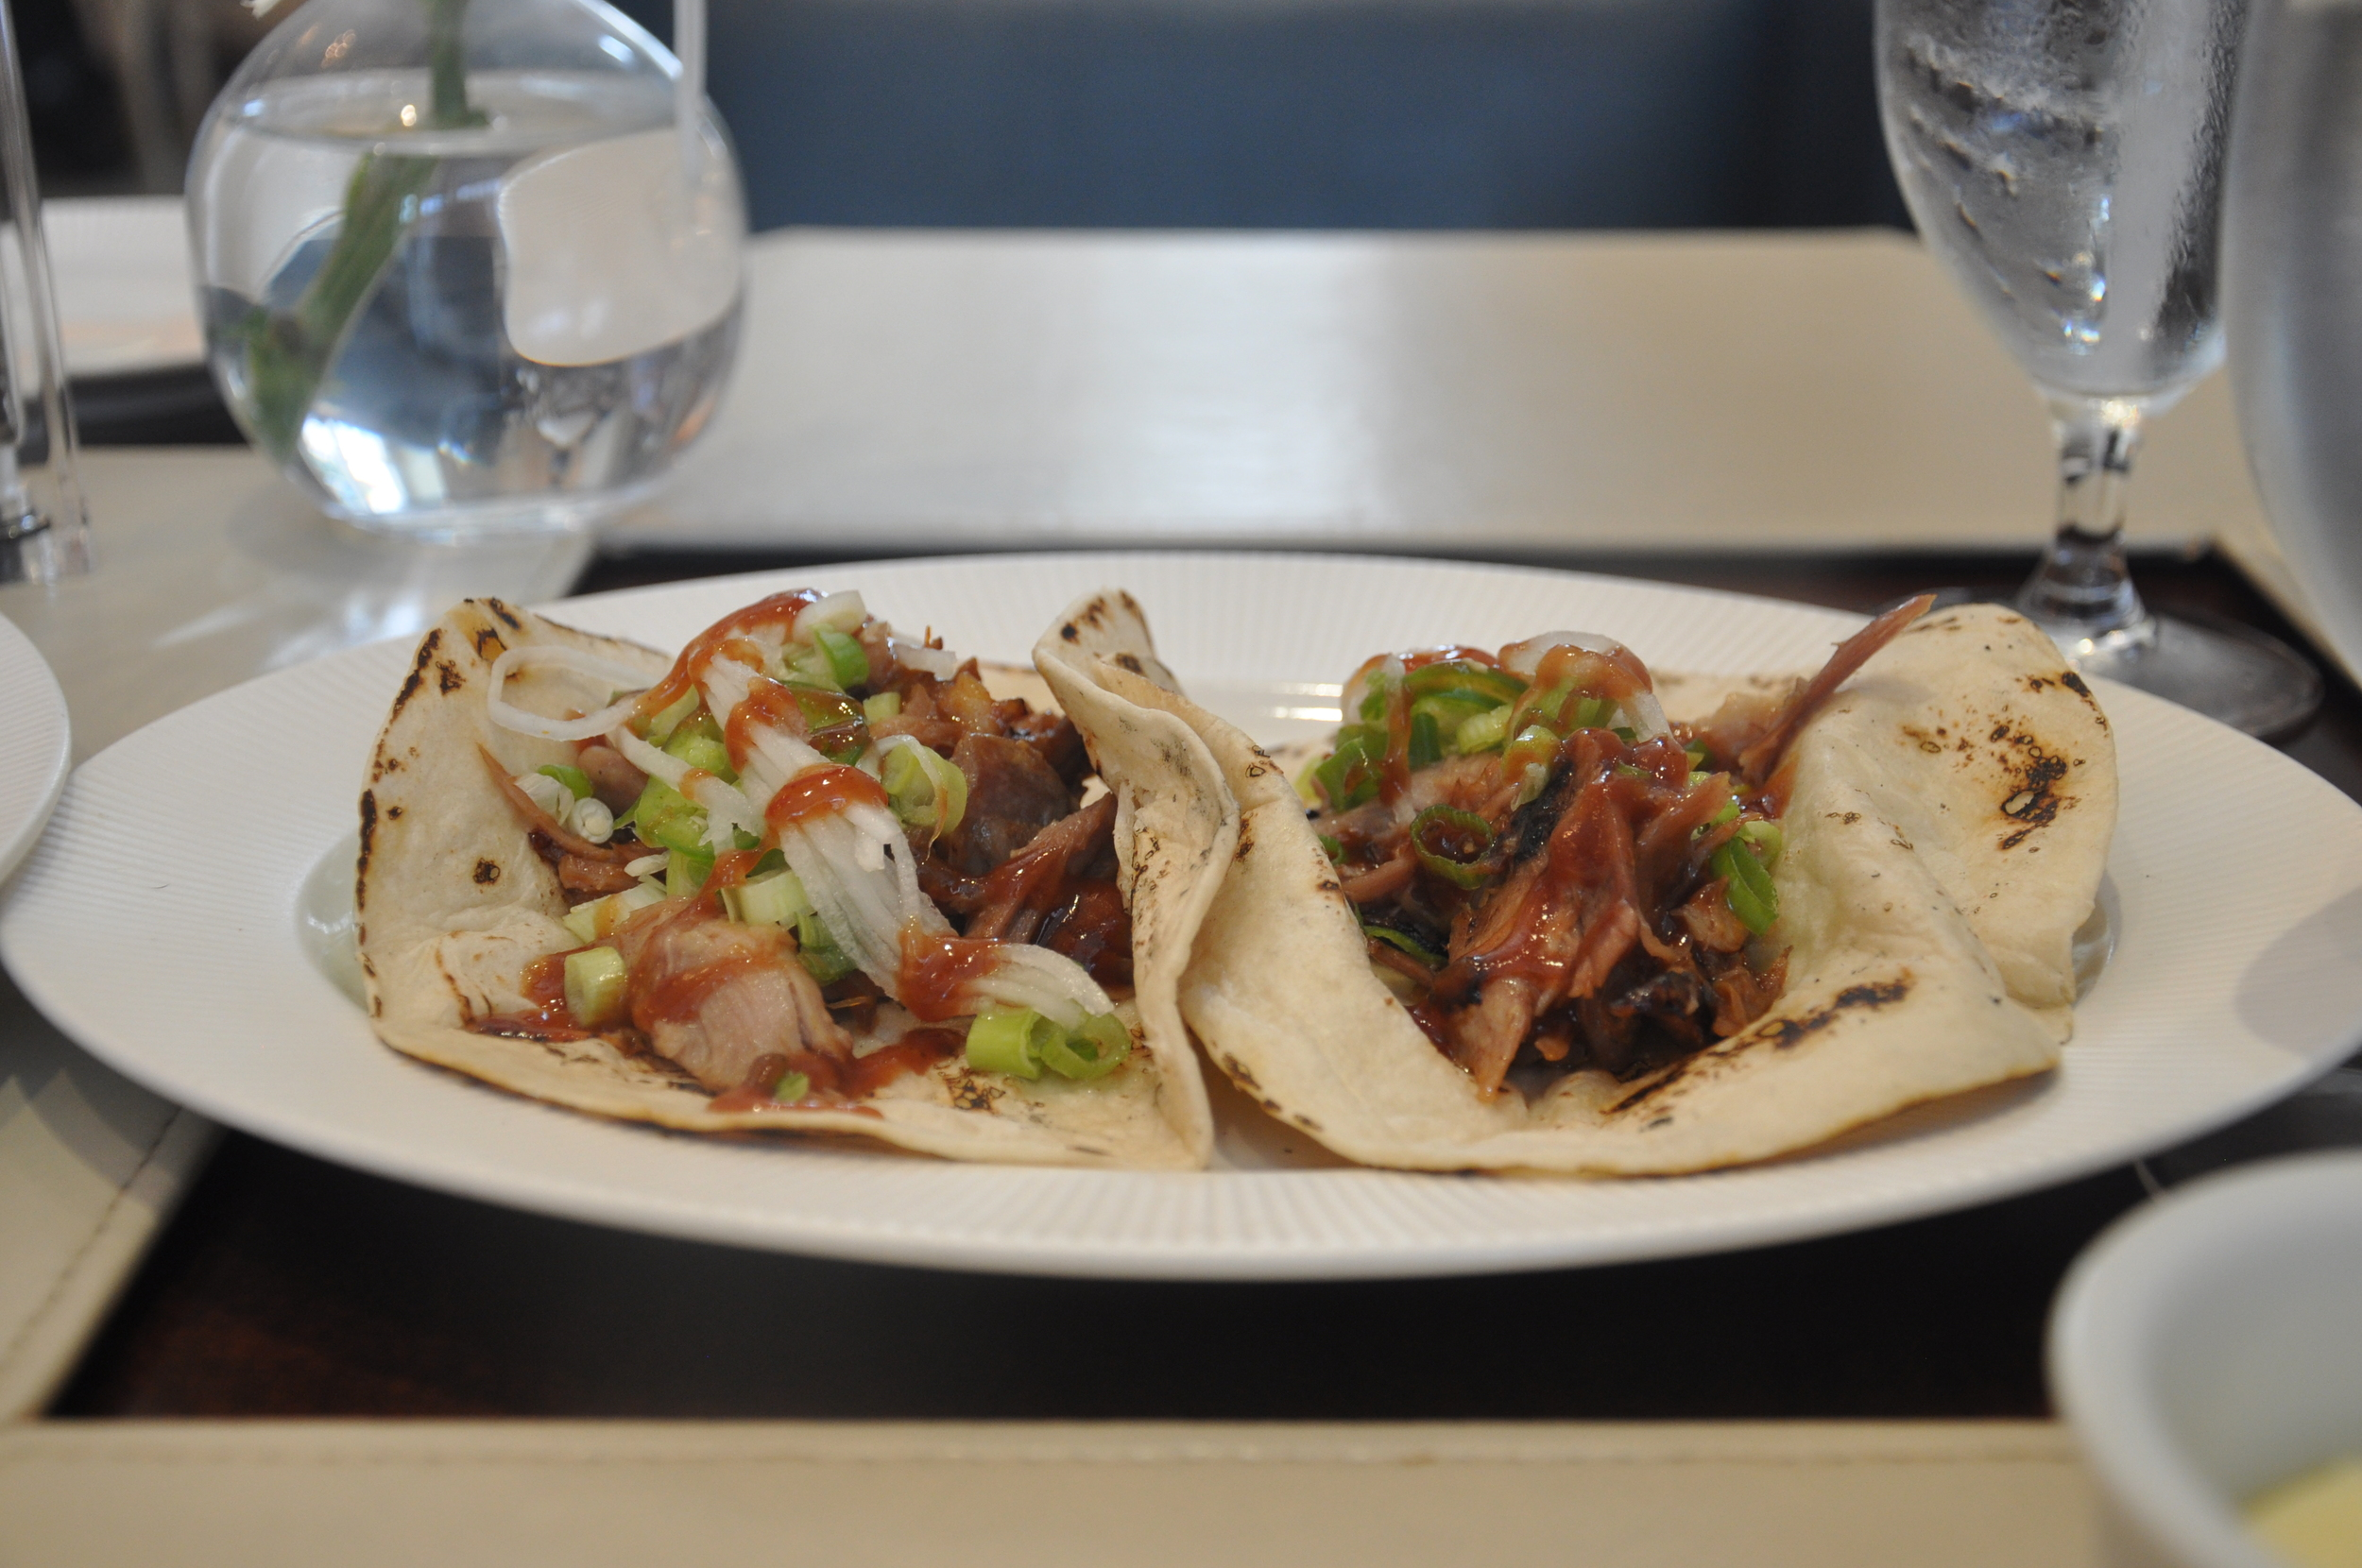 Sandbar's duck tacos are filled with pulled duck, daikon, and jalapeno and topped with hoisin sauce.